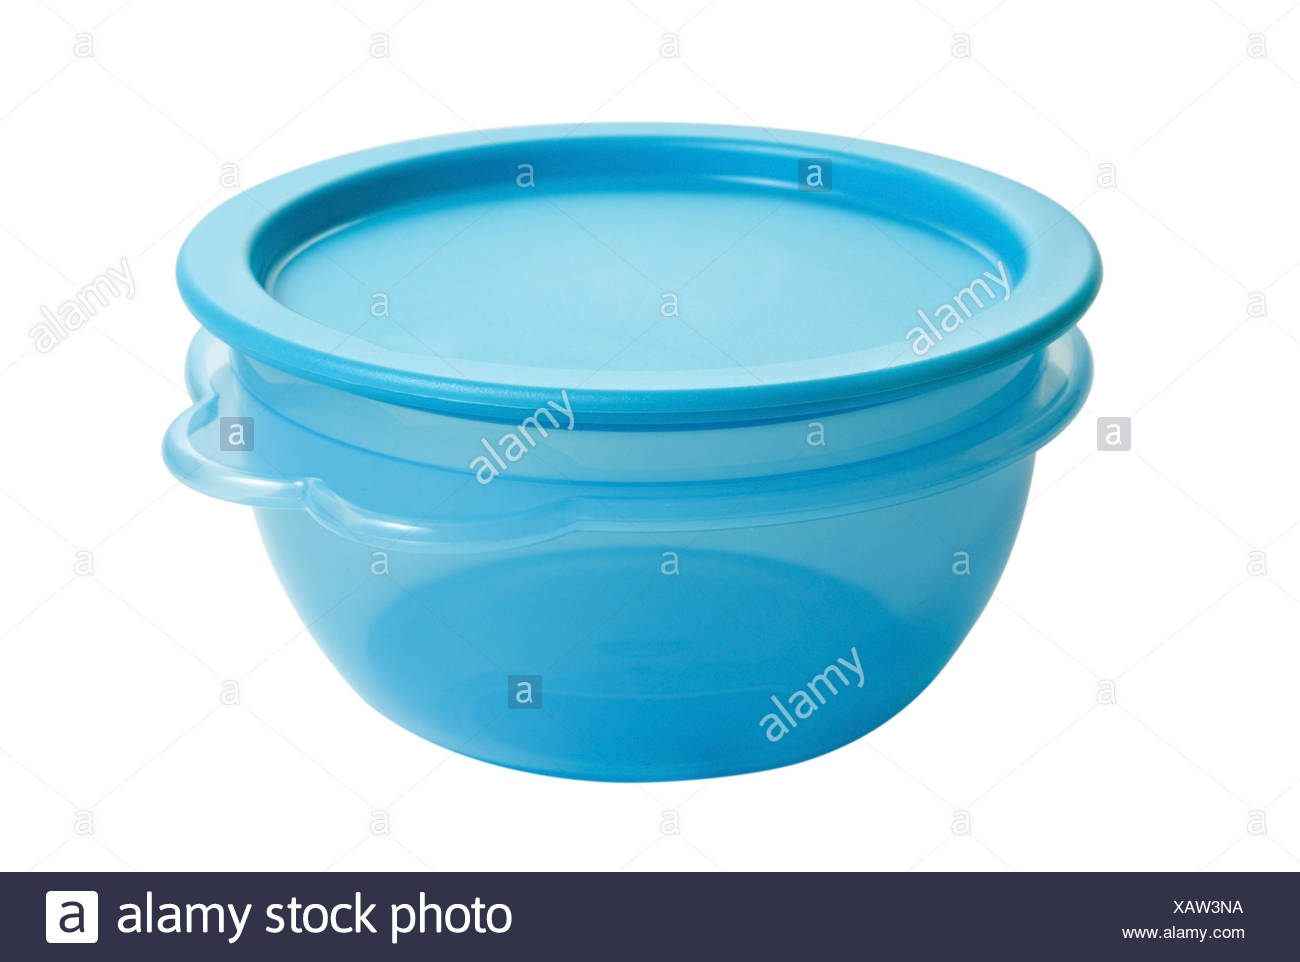 Plastic Food Container Like Tupperware Isolated On White Background